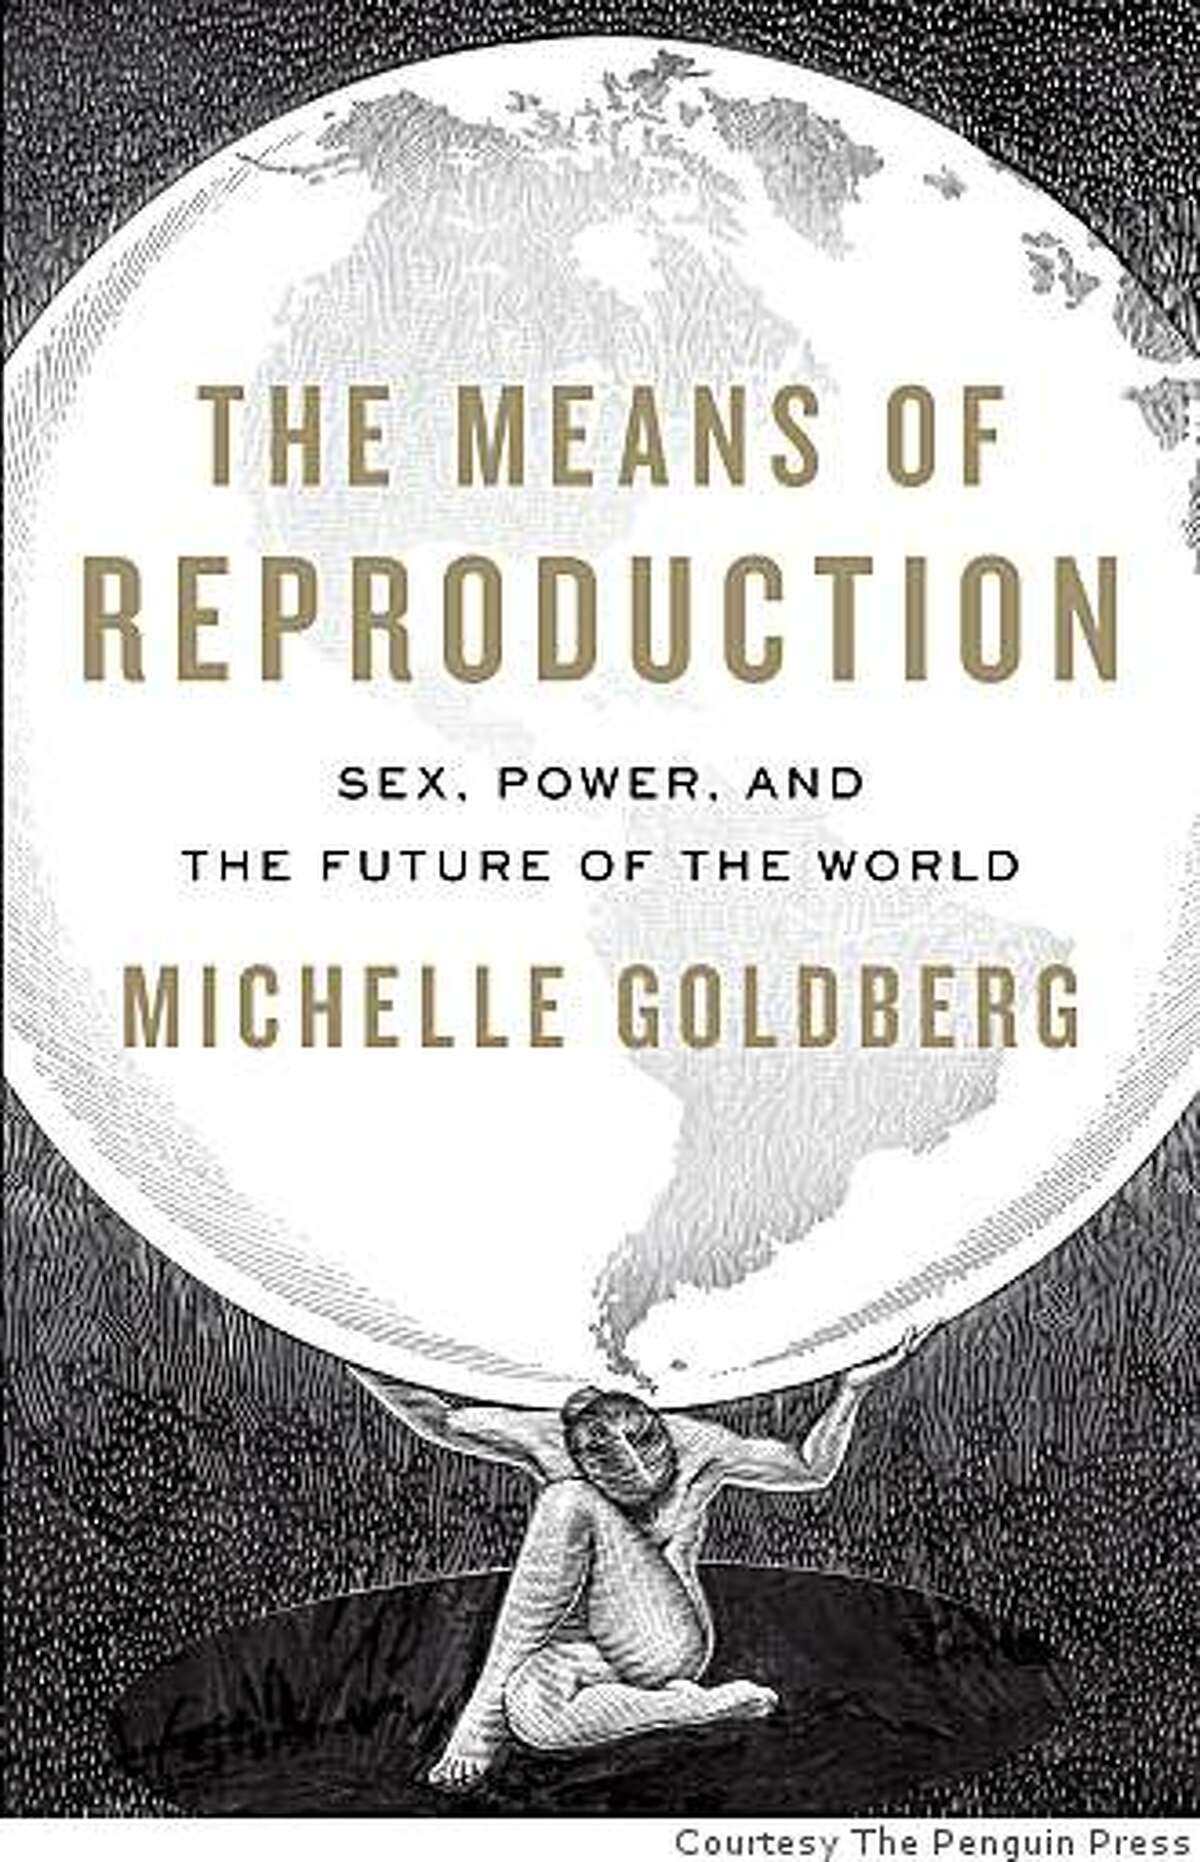 """Michelle Goldberg discusses """"The Means of Reproduction"""" Thurs. April 16, 7:30 p.m., at The Hillside Club, 2286 Cedar St., Berkeley, (510) 848-3227. www.berkeleyarts.org. Admission $10."""